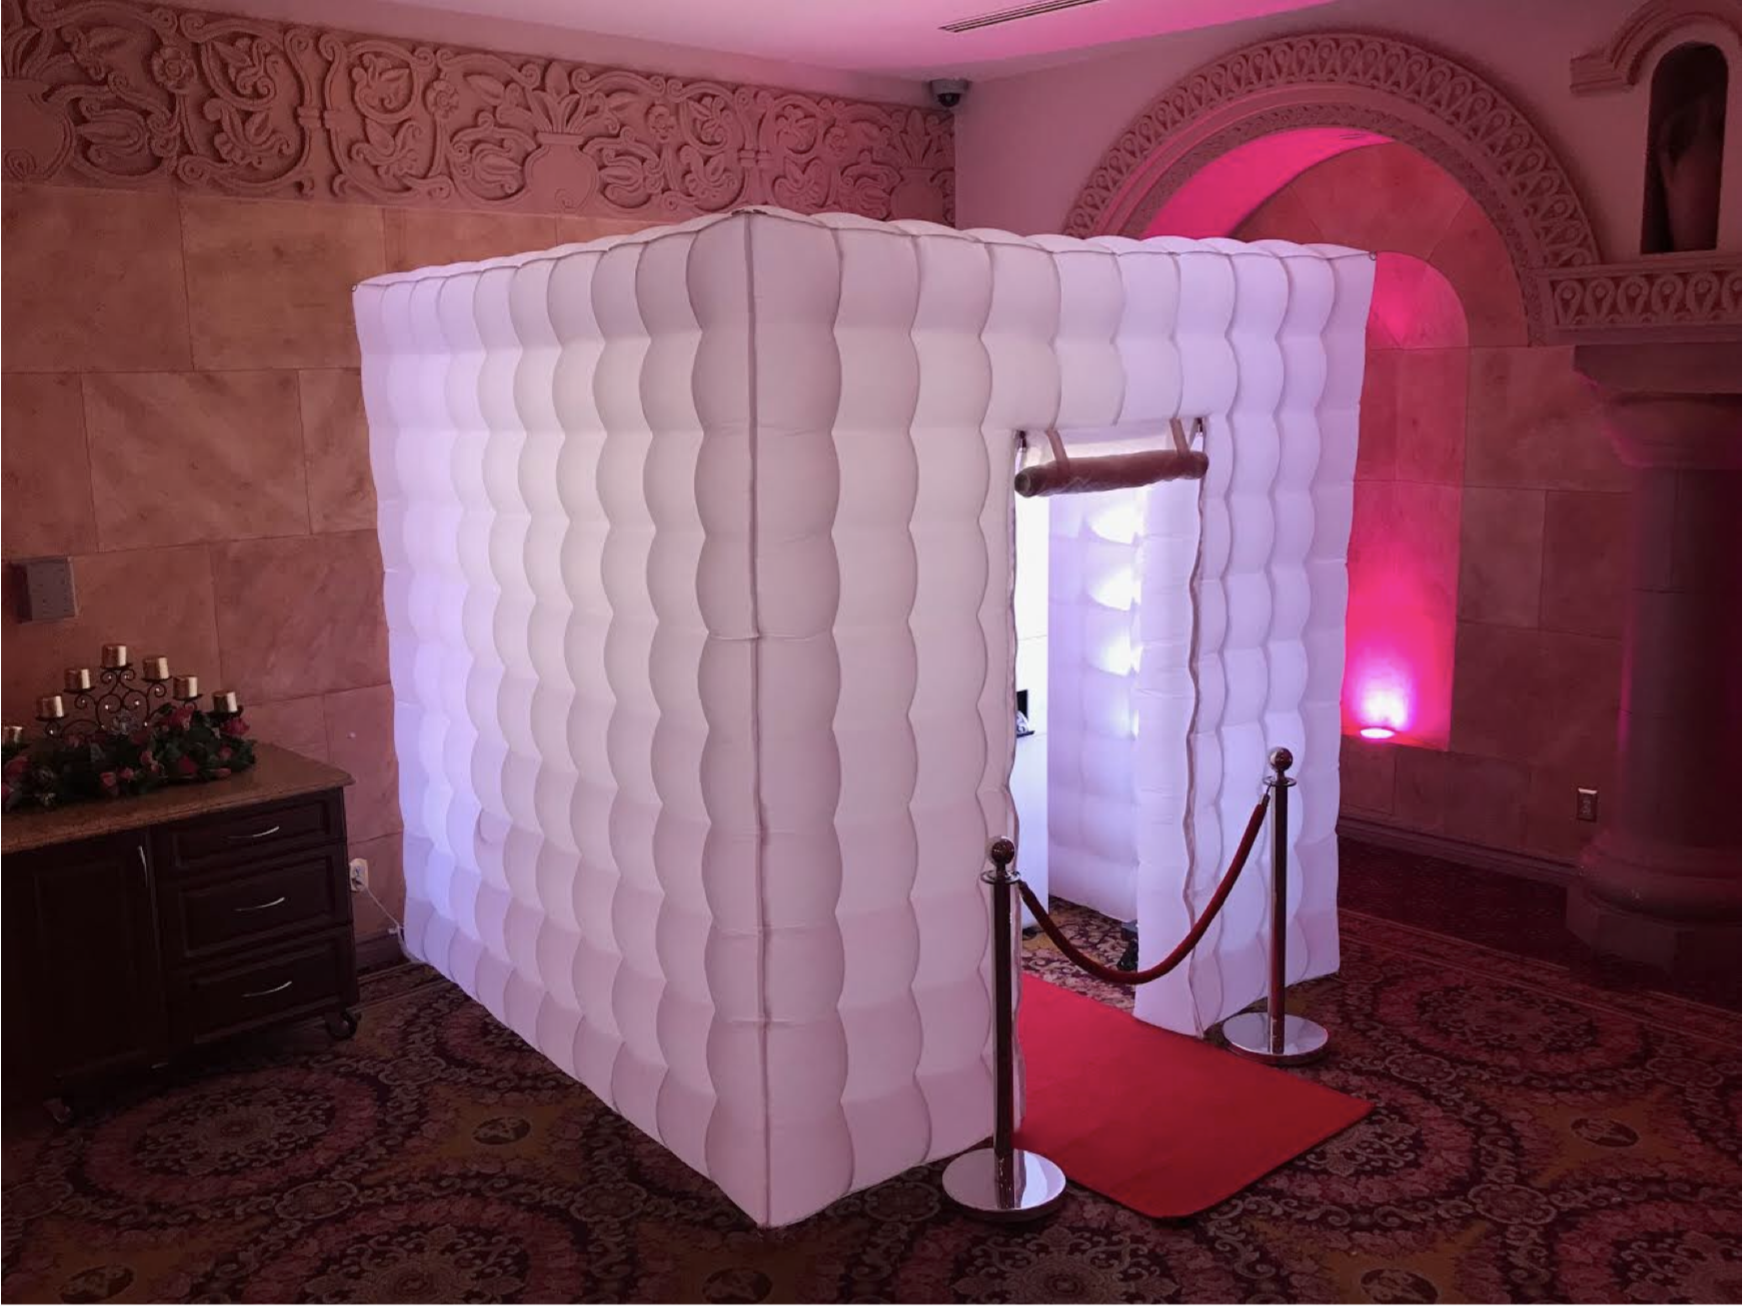 Inflatable LED enclosure by Angels Music DJs, Best Photo Booth rental Los Angeles for any Events, Photo Booth Services, Top Photo Booth To rent in L.A